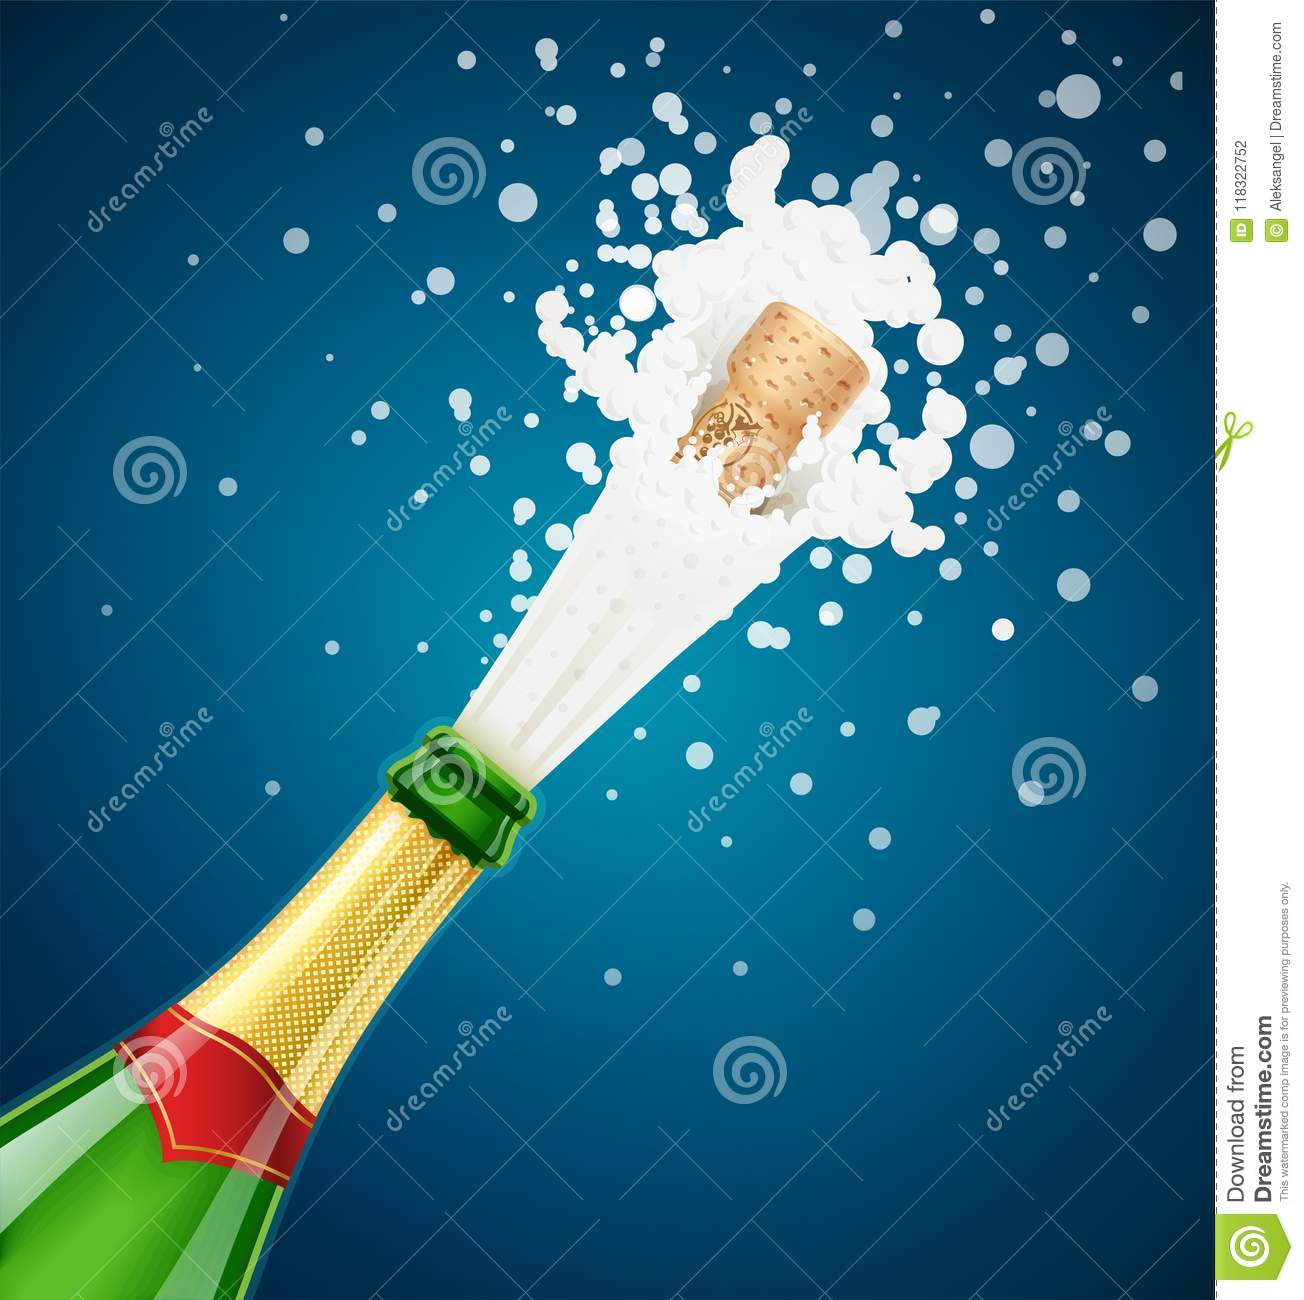 Champagne Bottle. Explode Traditional French Alcohol Drink